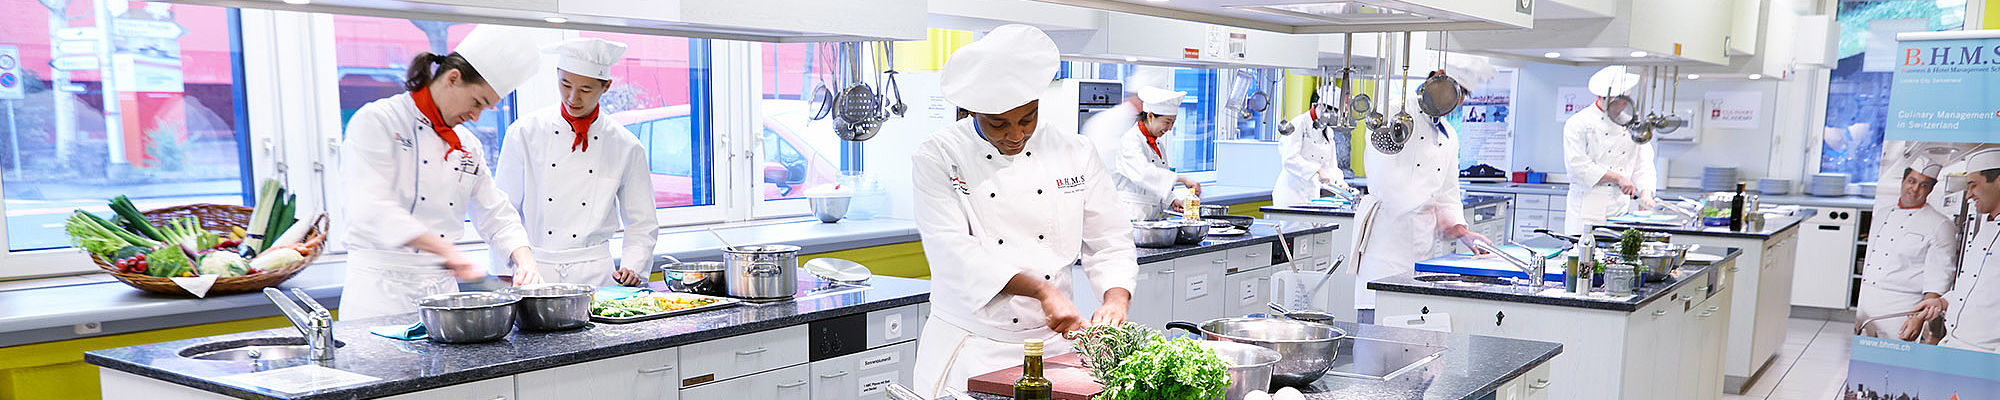 Study Culinary Arts at B.H.M.S. Lucerne